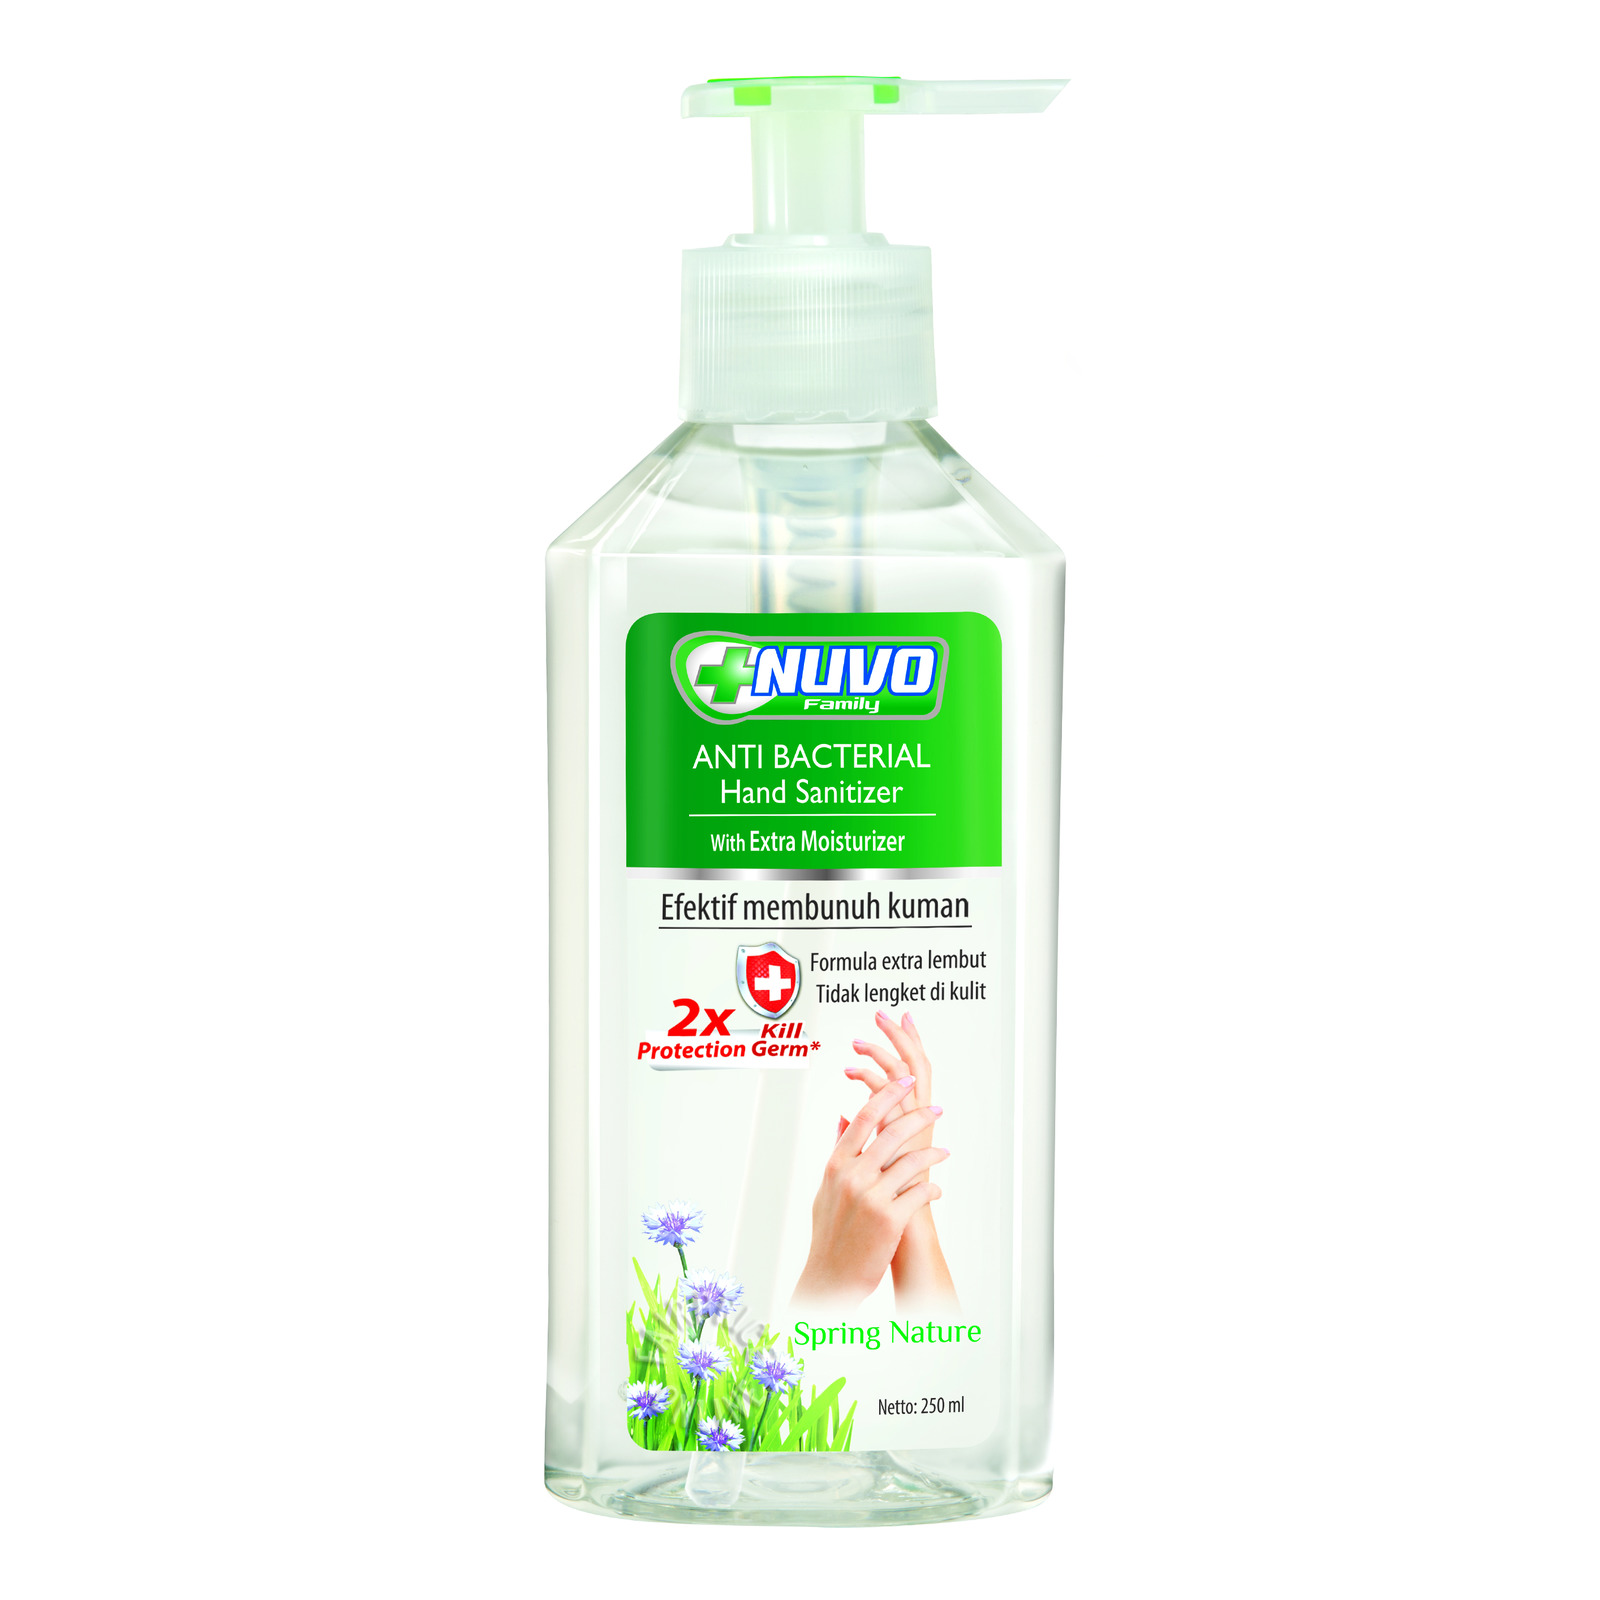 Nuvo Anti Bacterial Hand Sanitizer - Spring Nature